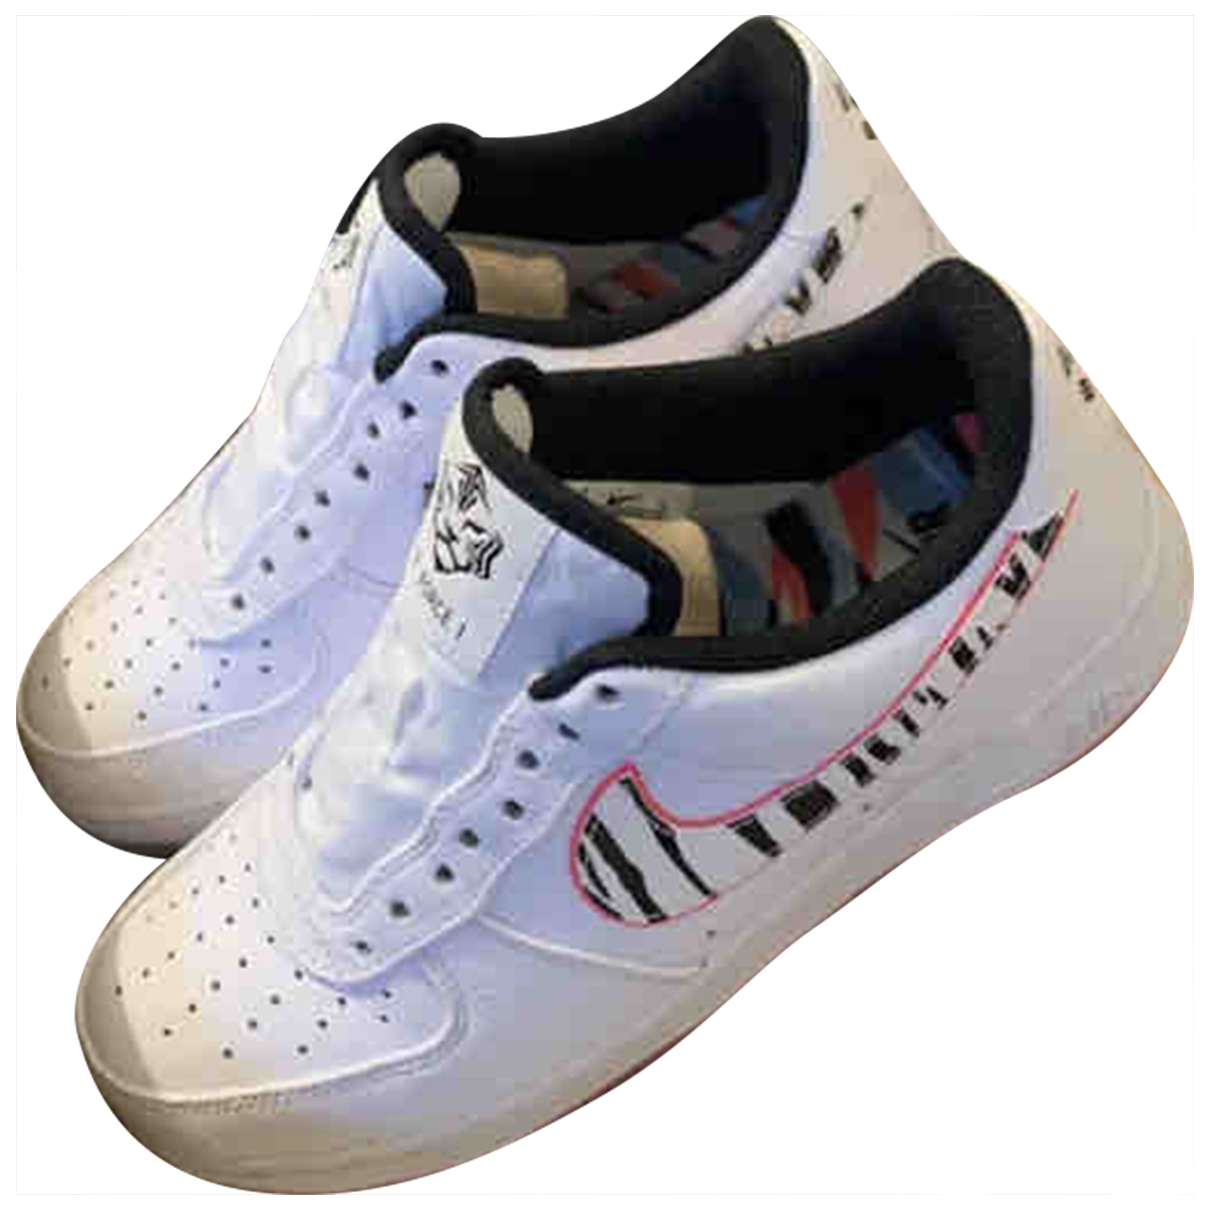 Nike Air Force 1 White Leather Trainers for Women 40.5 EU